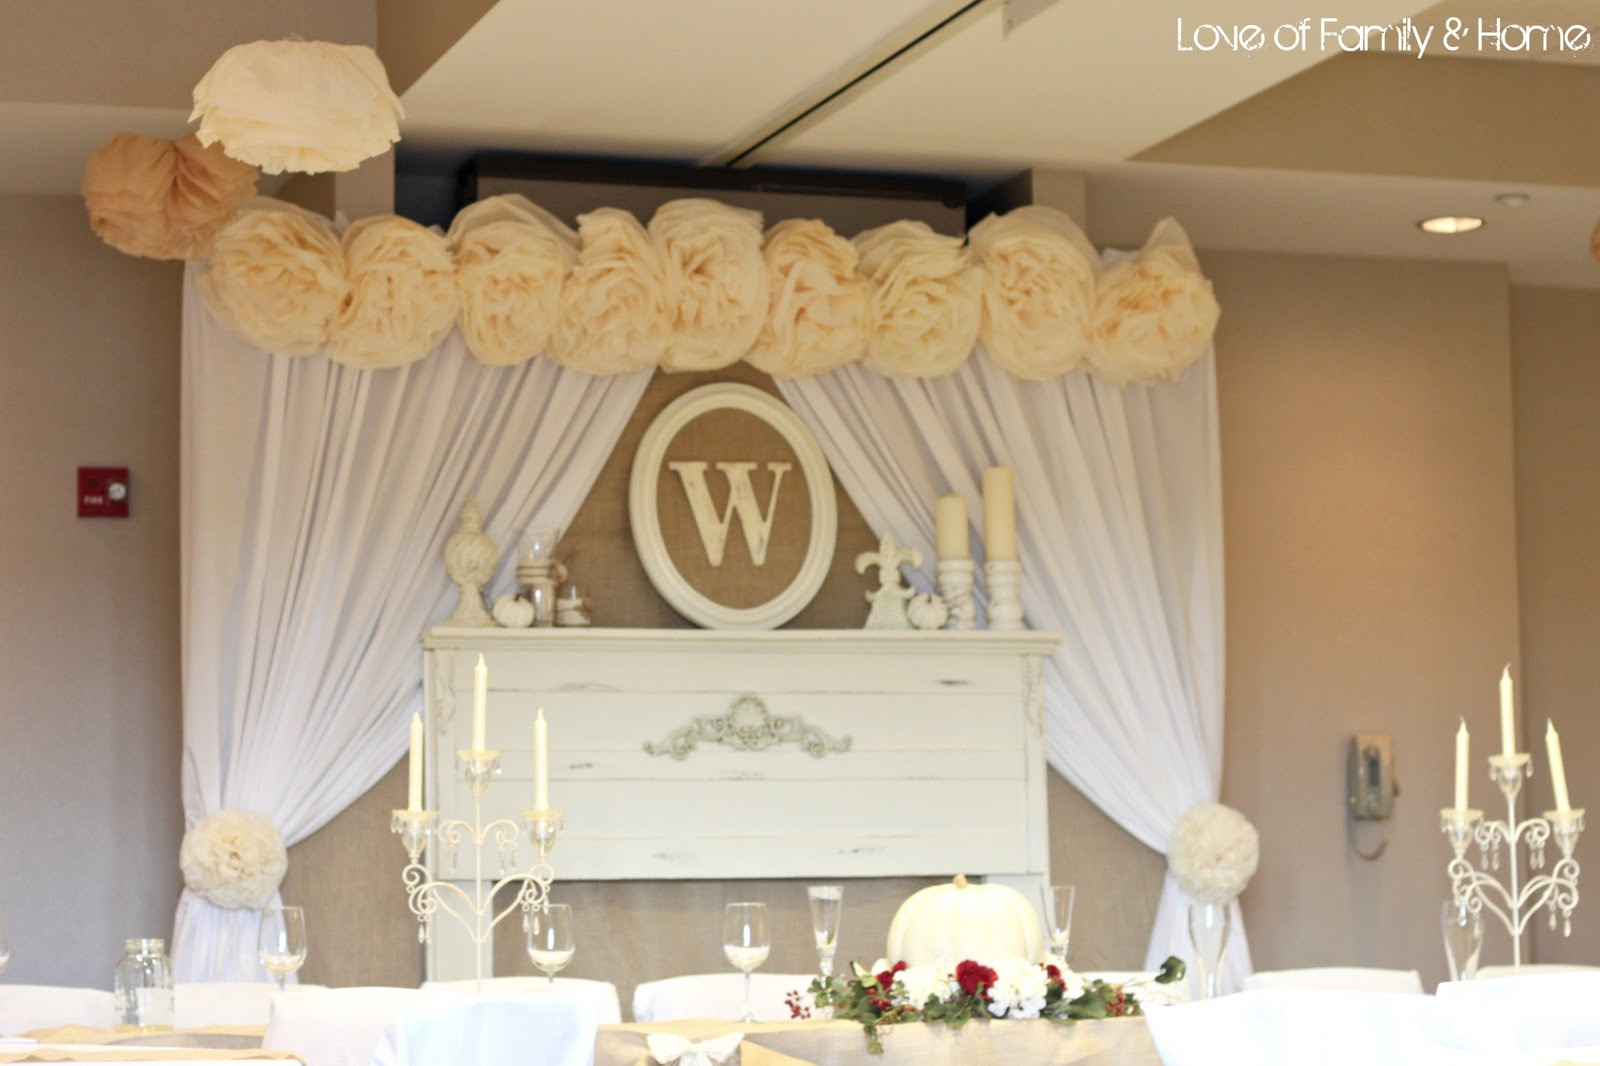 Best ideas about DIY Wedding Decor . Save or Pin DIY Rustic Chic Fall Wedding Reveal Love of Family Now.